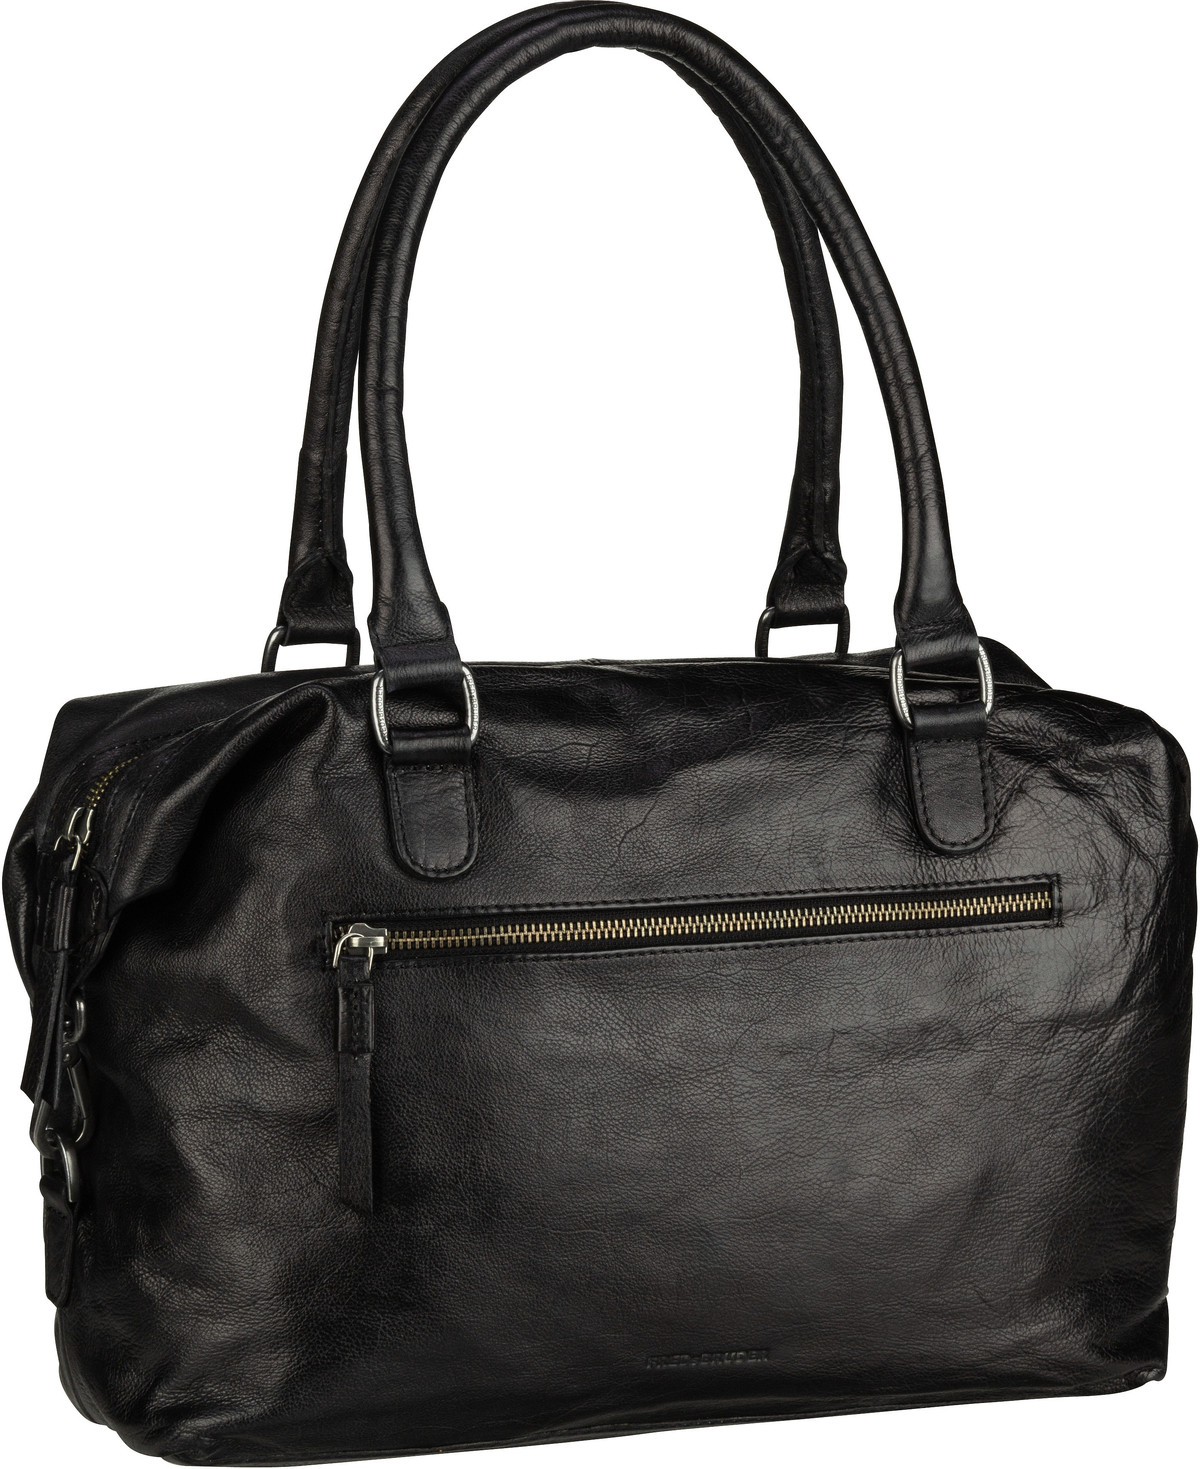 Handtasche All in Black